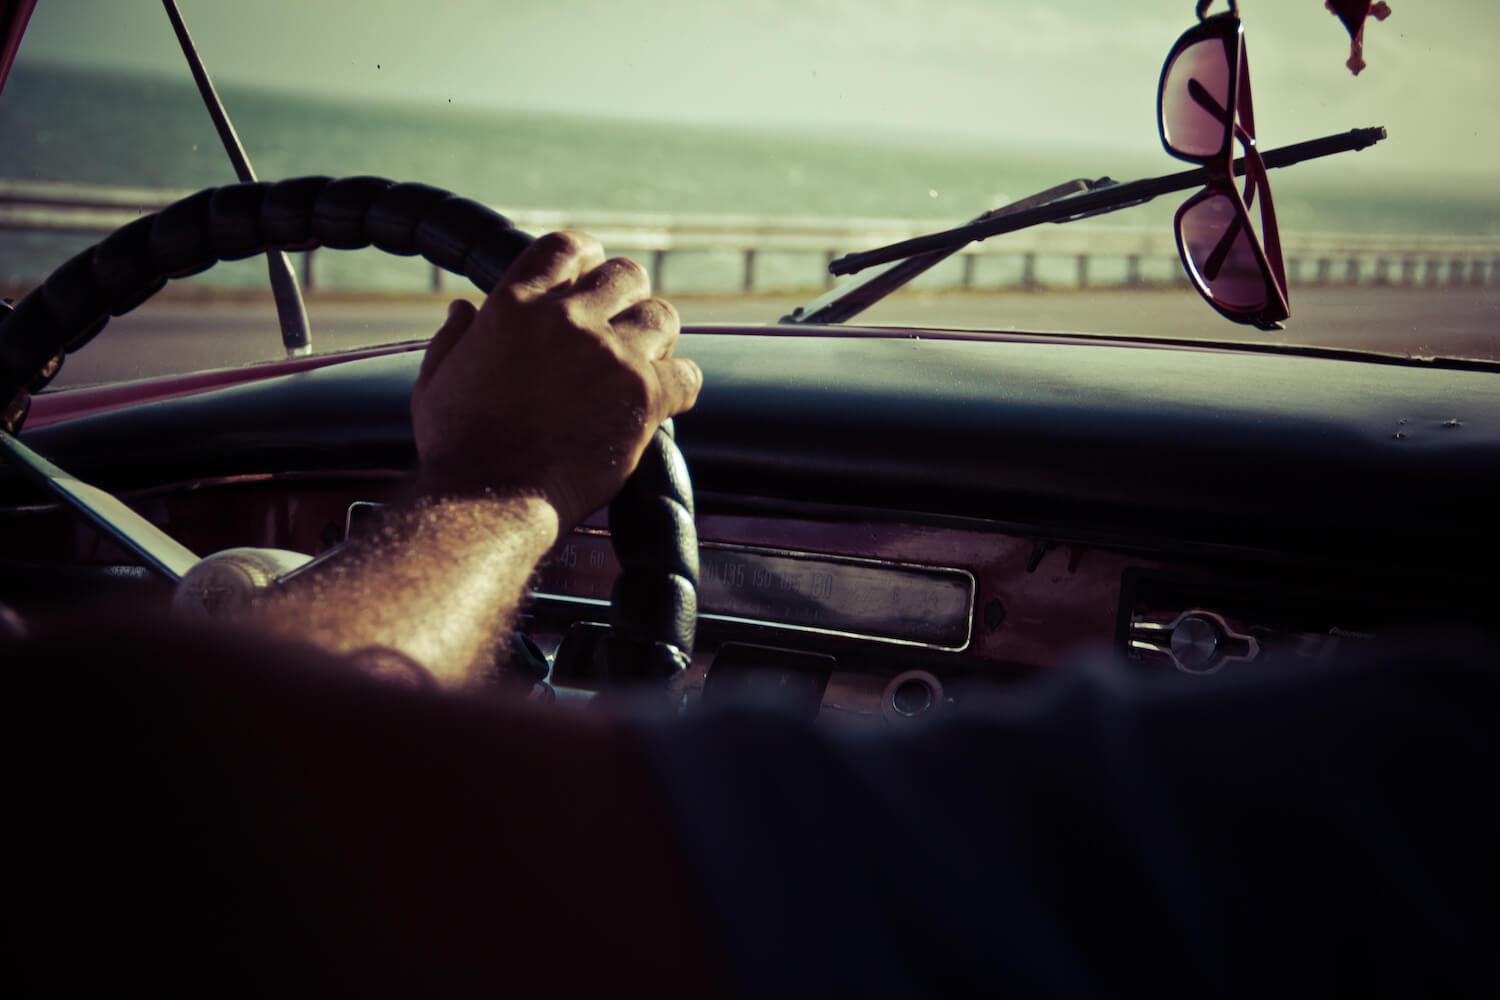 mans hands on wheel driving image